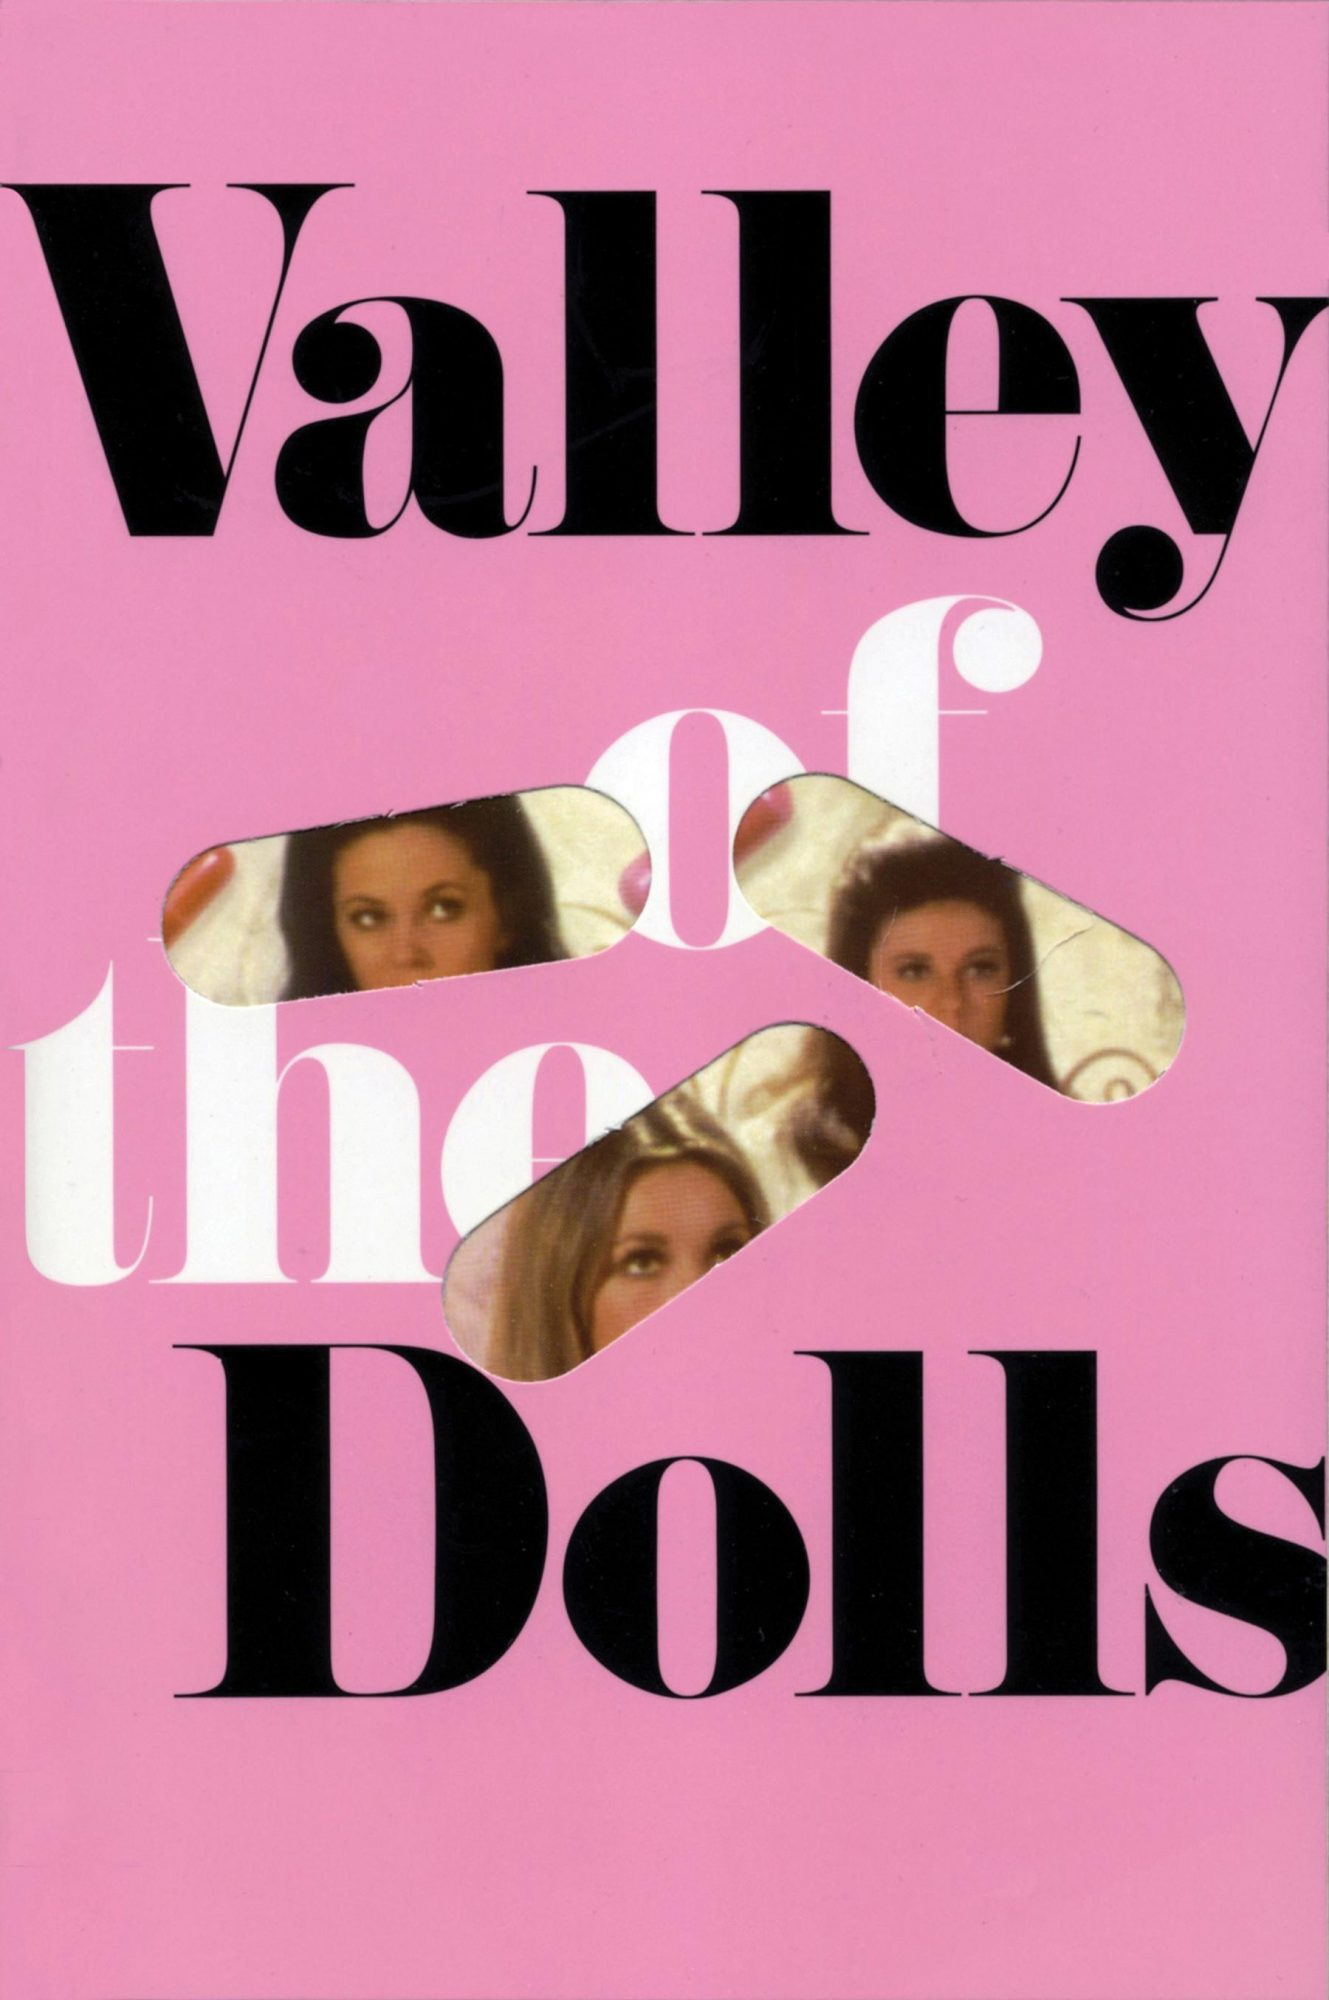 Valley of the Dolls (5/22/2015)by Jacqueline Susann